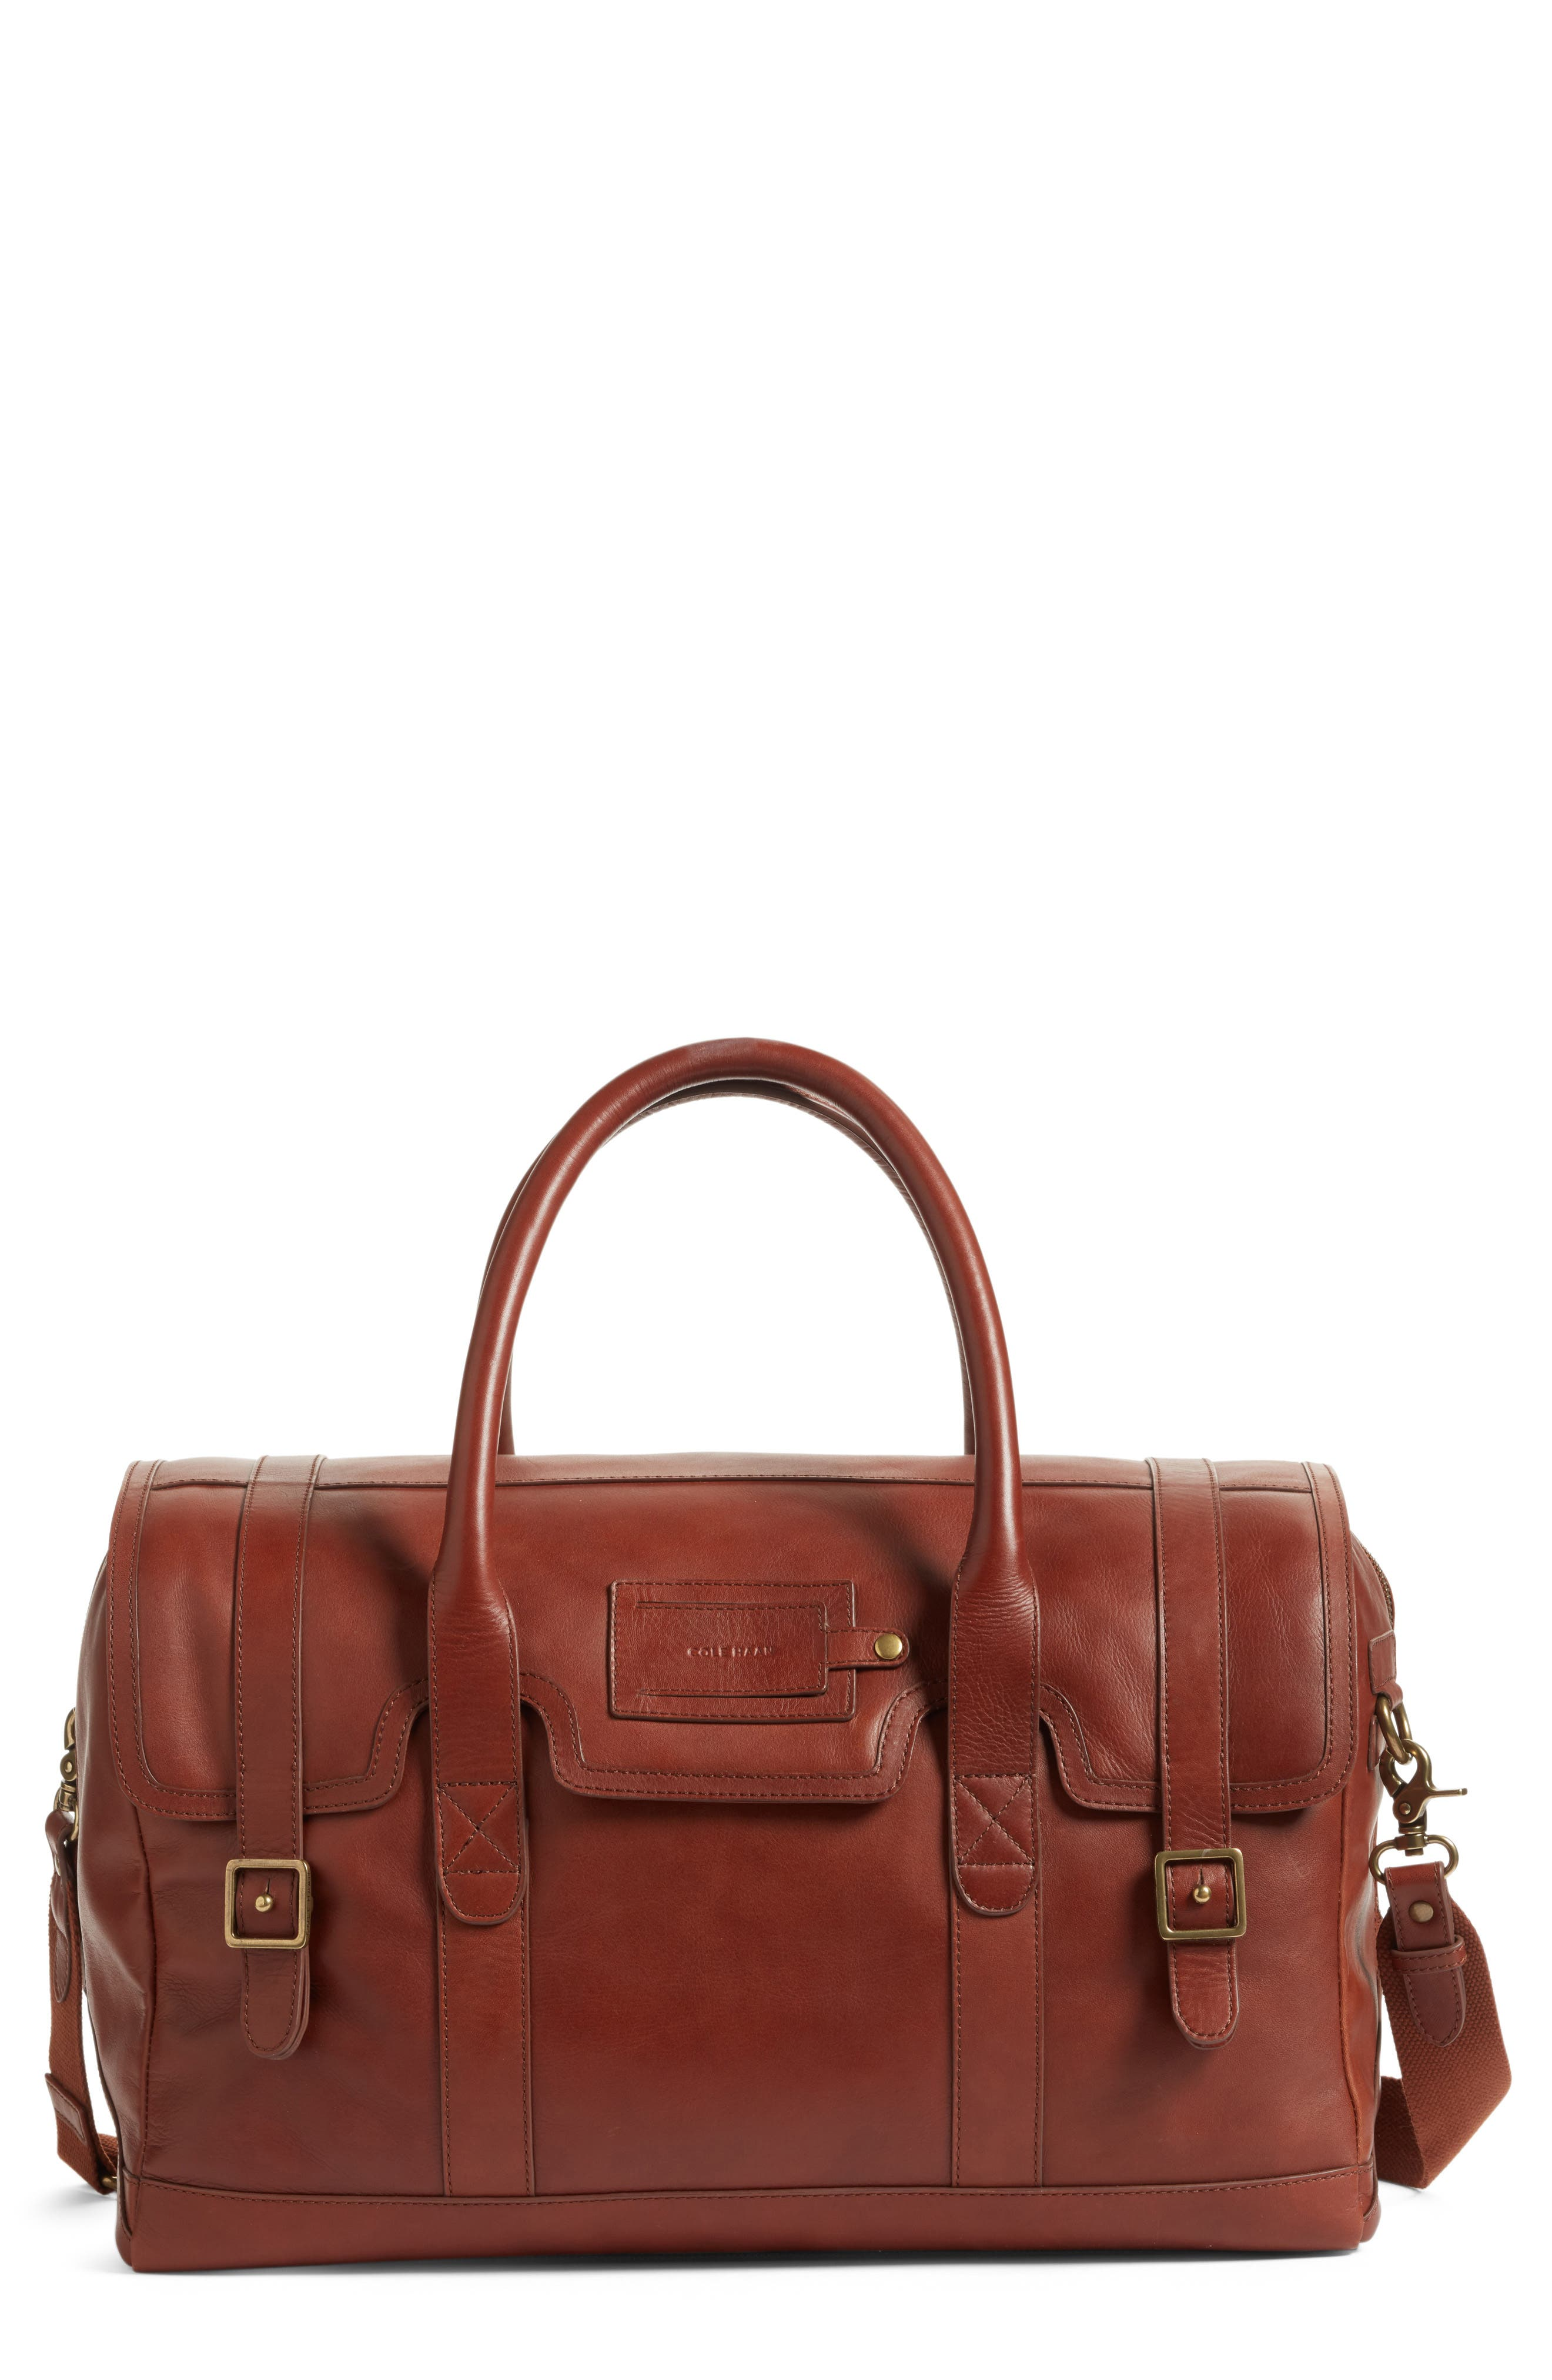 Leather Duffel Bag,                             Main thumbnail 2, color,